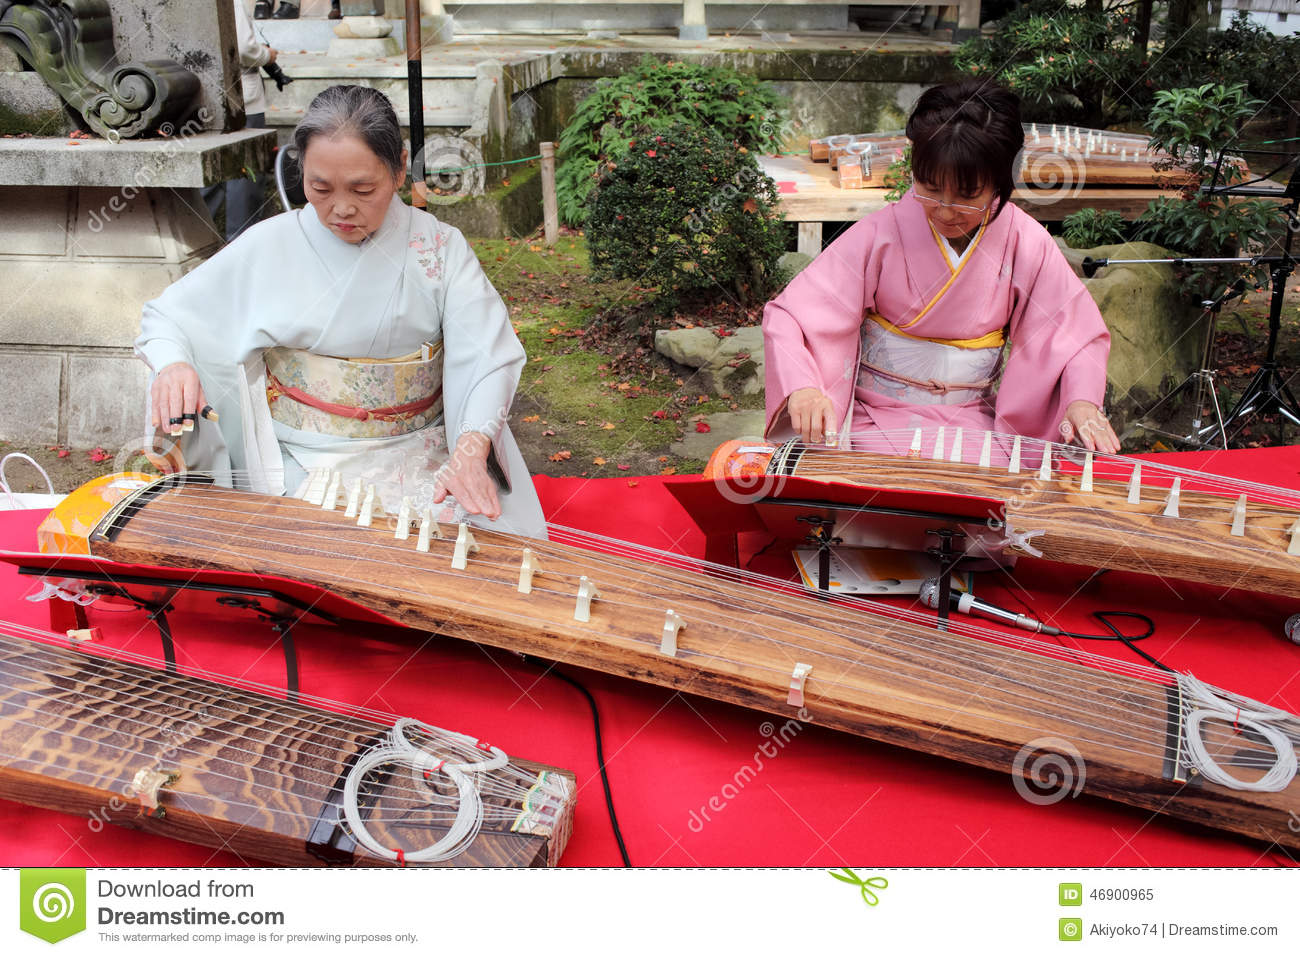 Japan women playing with them self foto 709